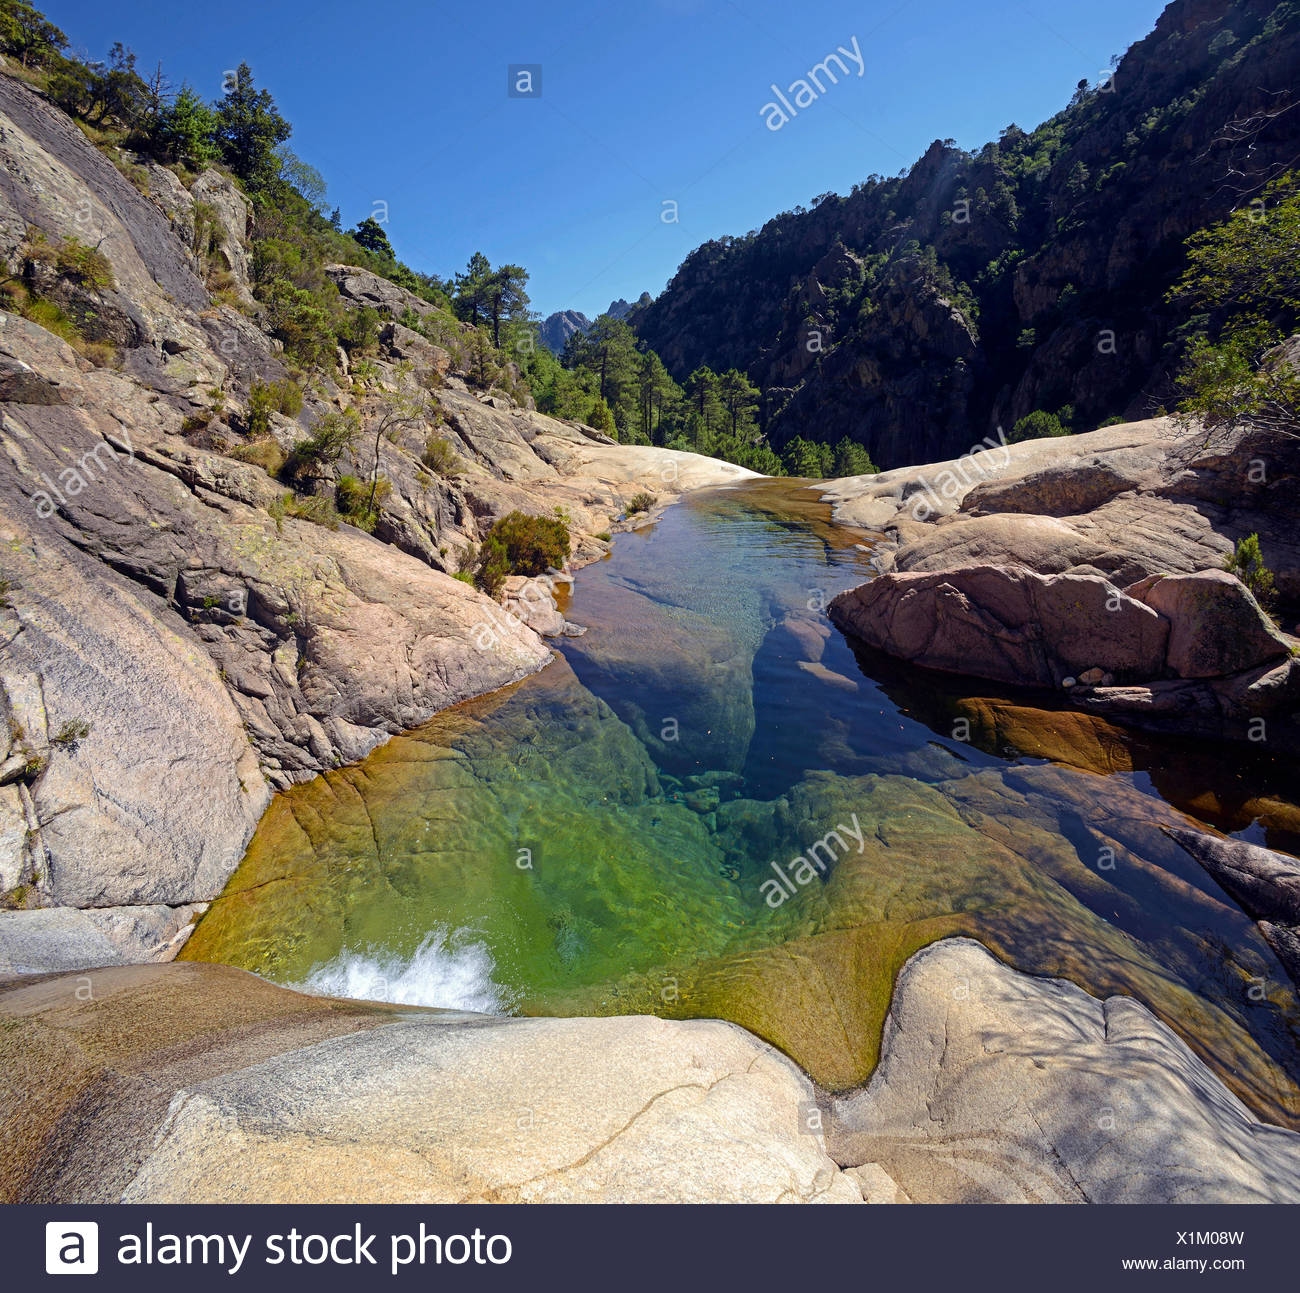 the canyon of Purcaraccia in Bavella mountain, France, Corsica - Stock Image